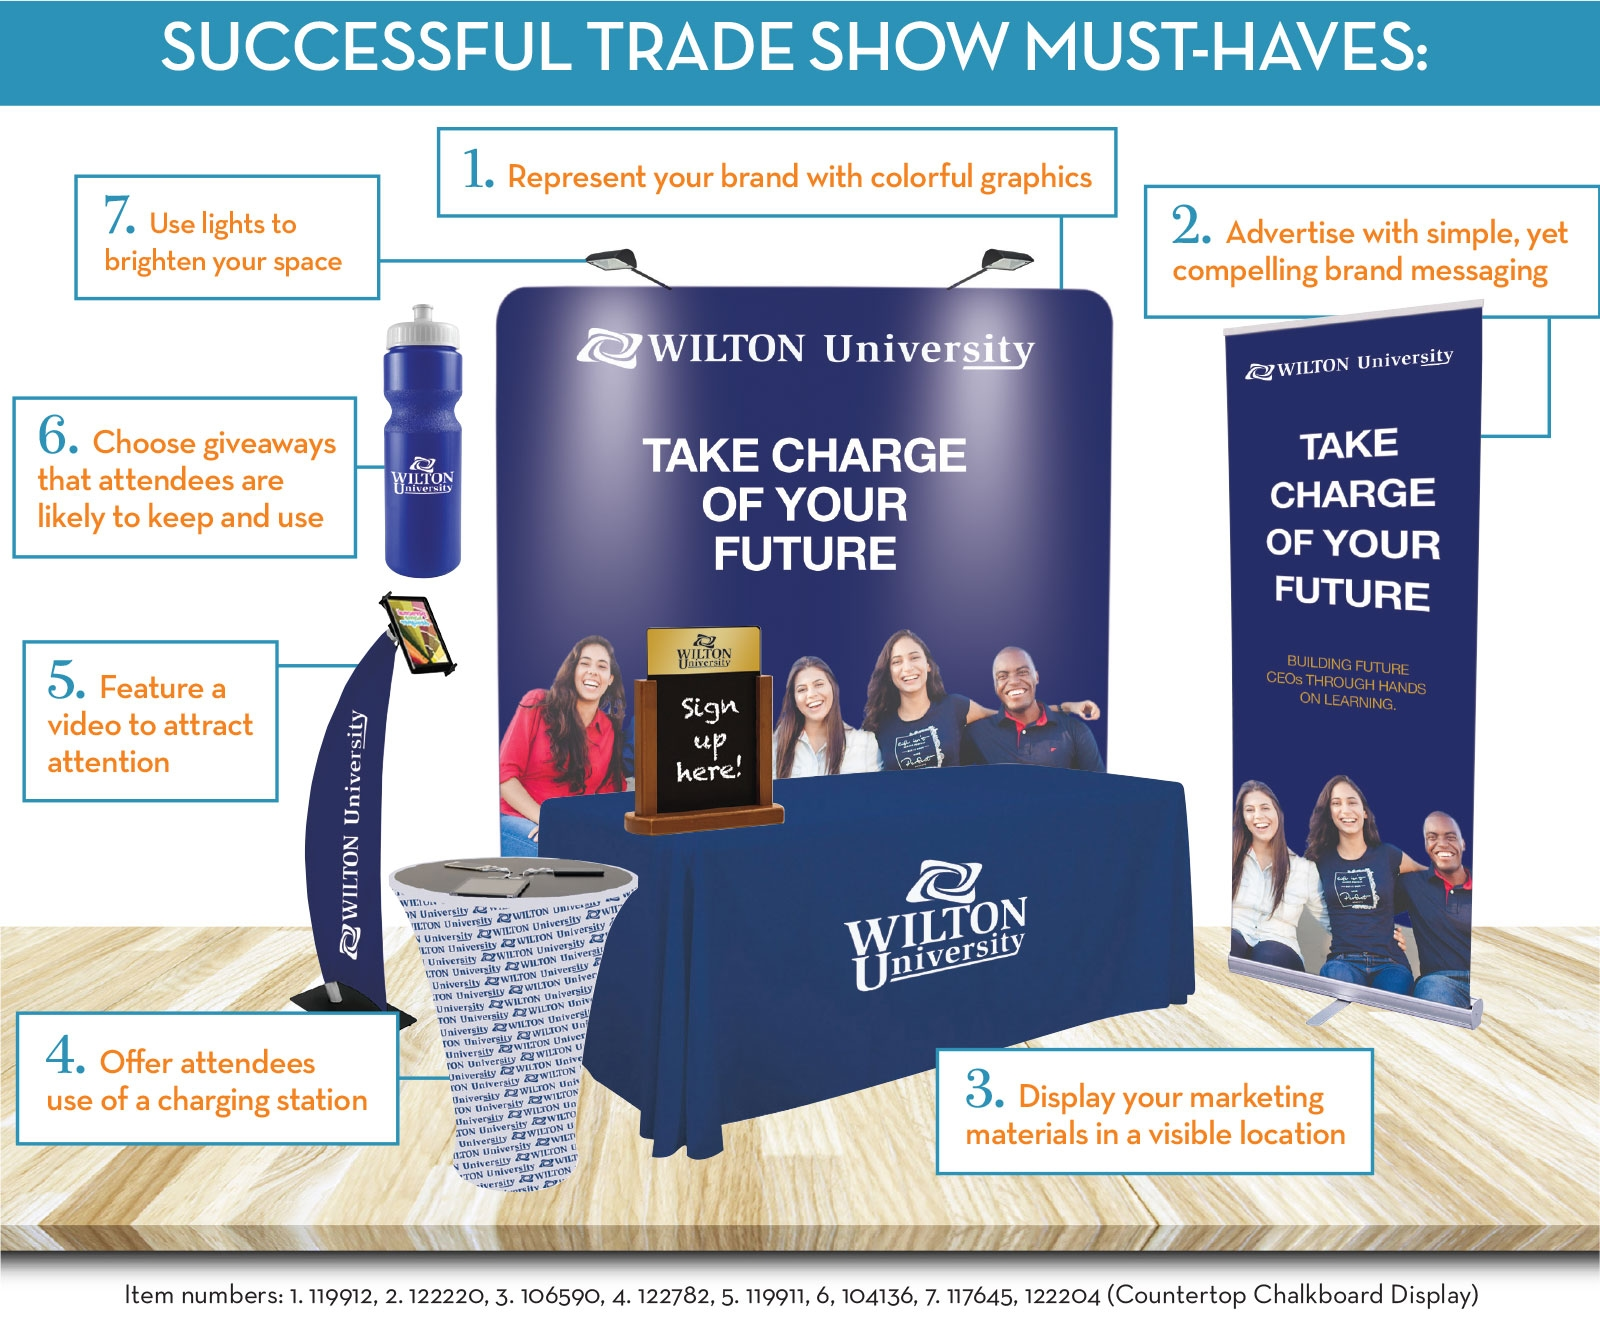 Successful Trade Show Booth Must-Haves